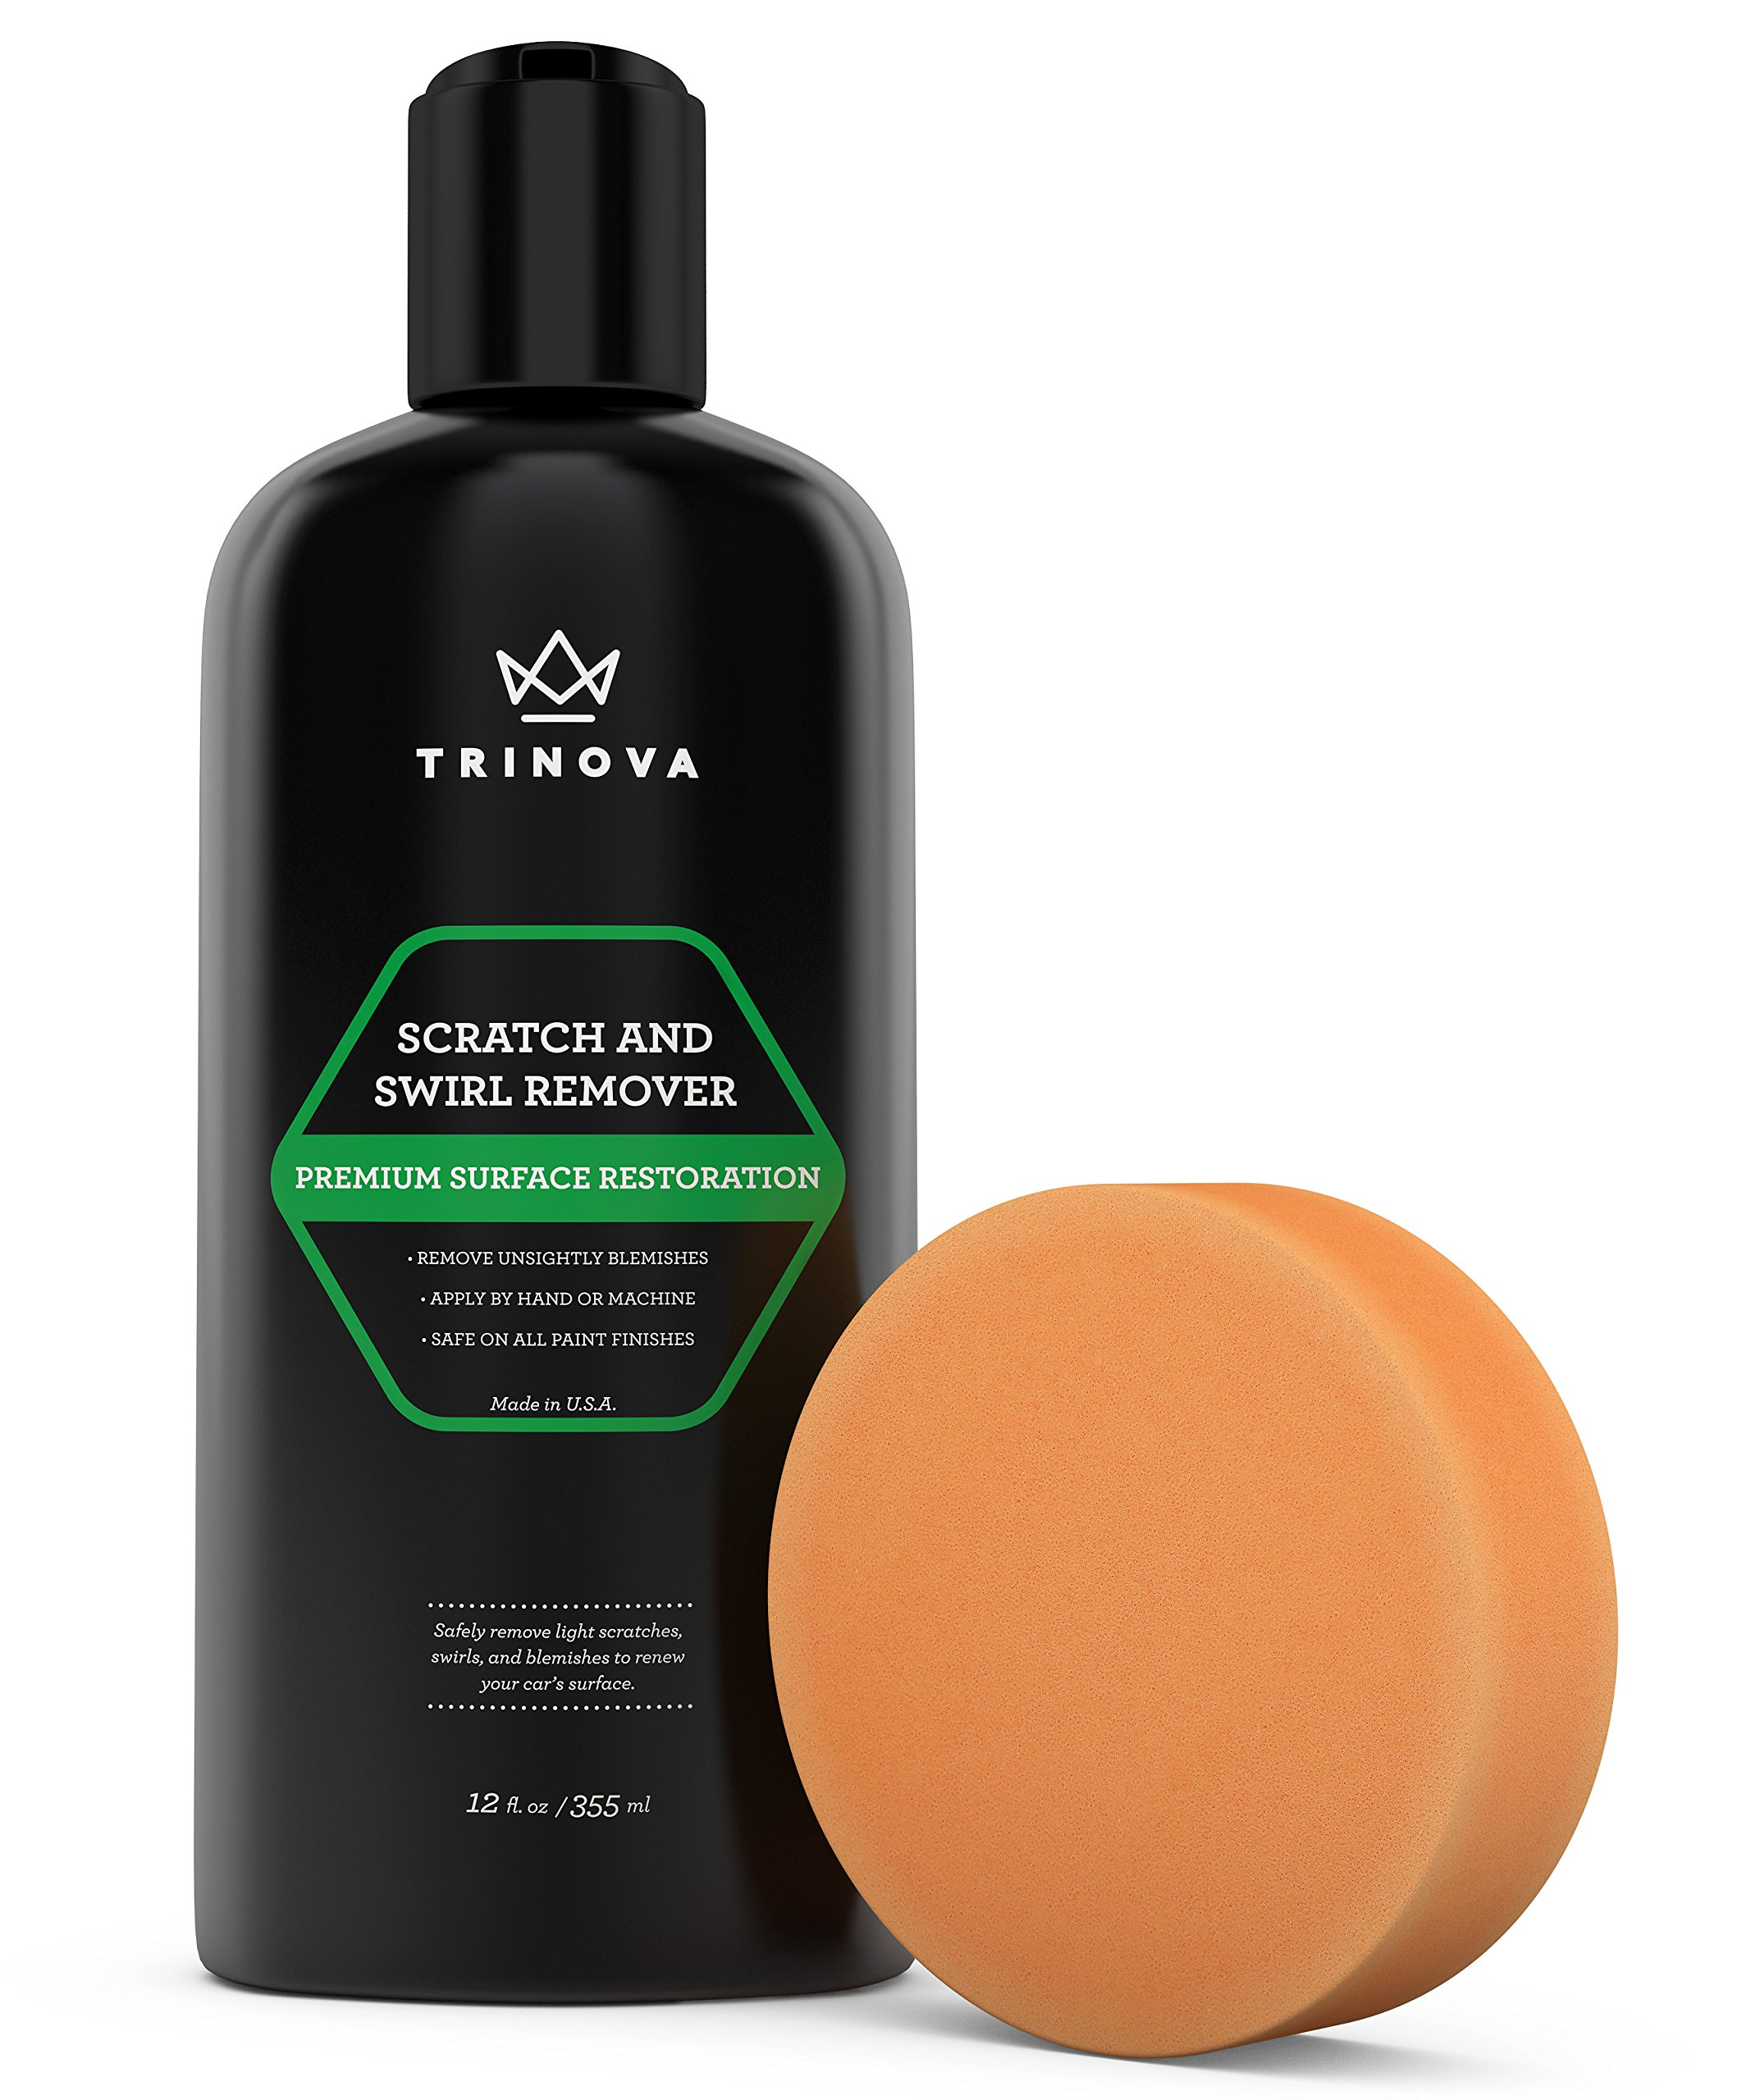 TriNova Scratch Swirl Remover - Best Abrasive Compound car Paint Restoration. Kit Includes Buffer pad Removal Polish in a Complete System. Ultimate Solution Clear Coat Care. 12oz